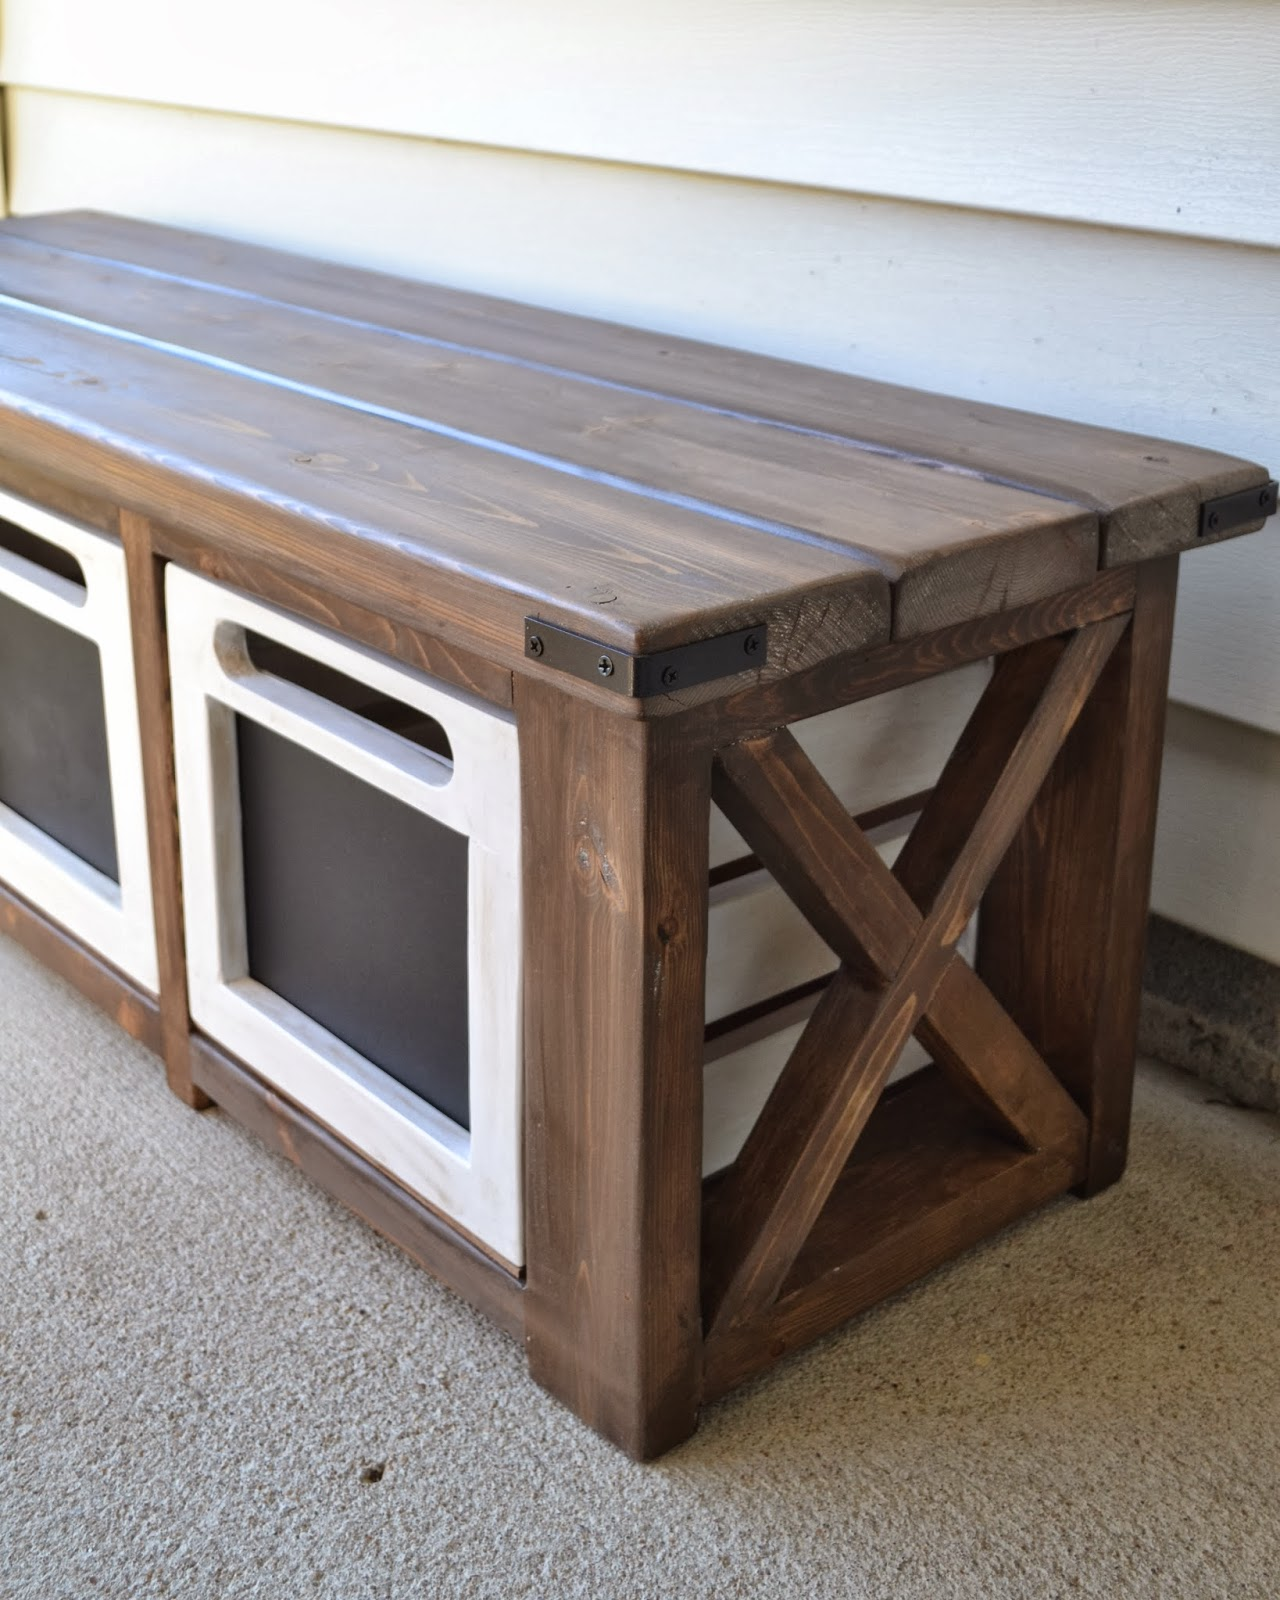 adorable entryway benche with storages | The Domestic Doozie: Custom Entryway Bench with Chalkboard ...